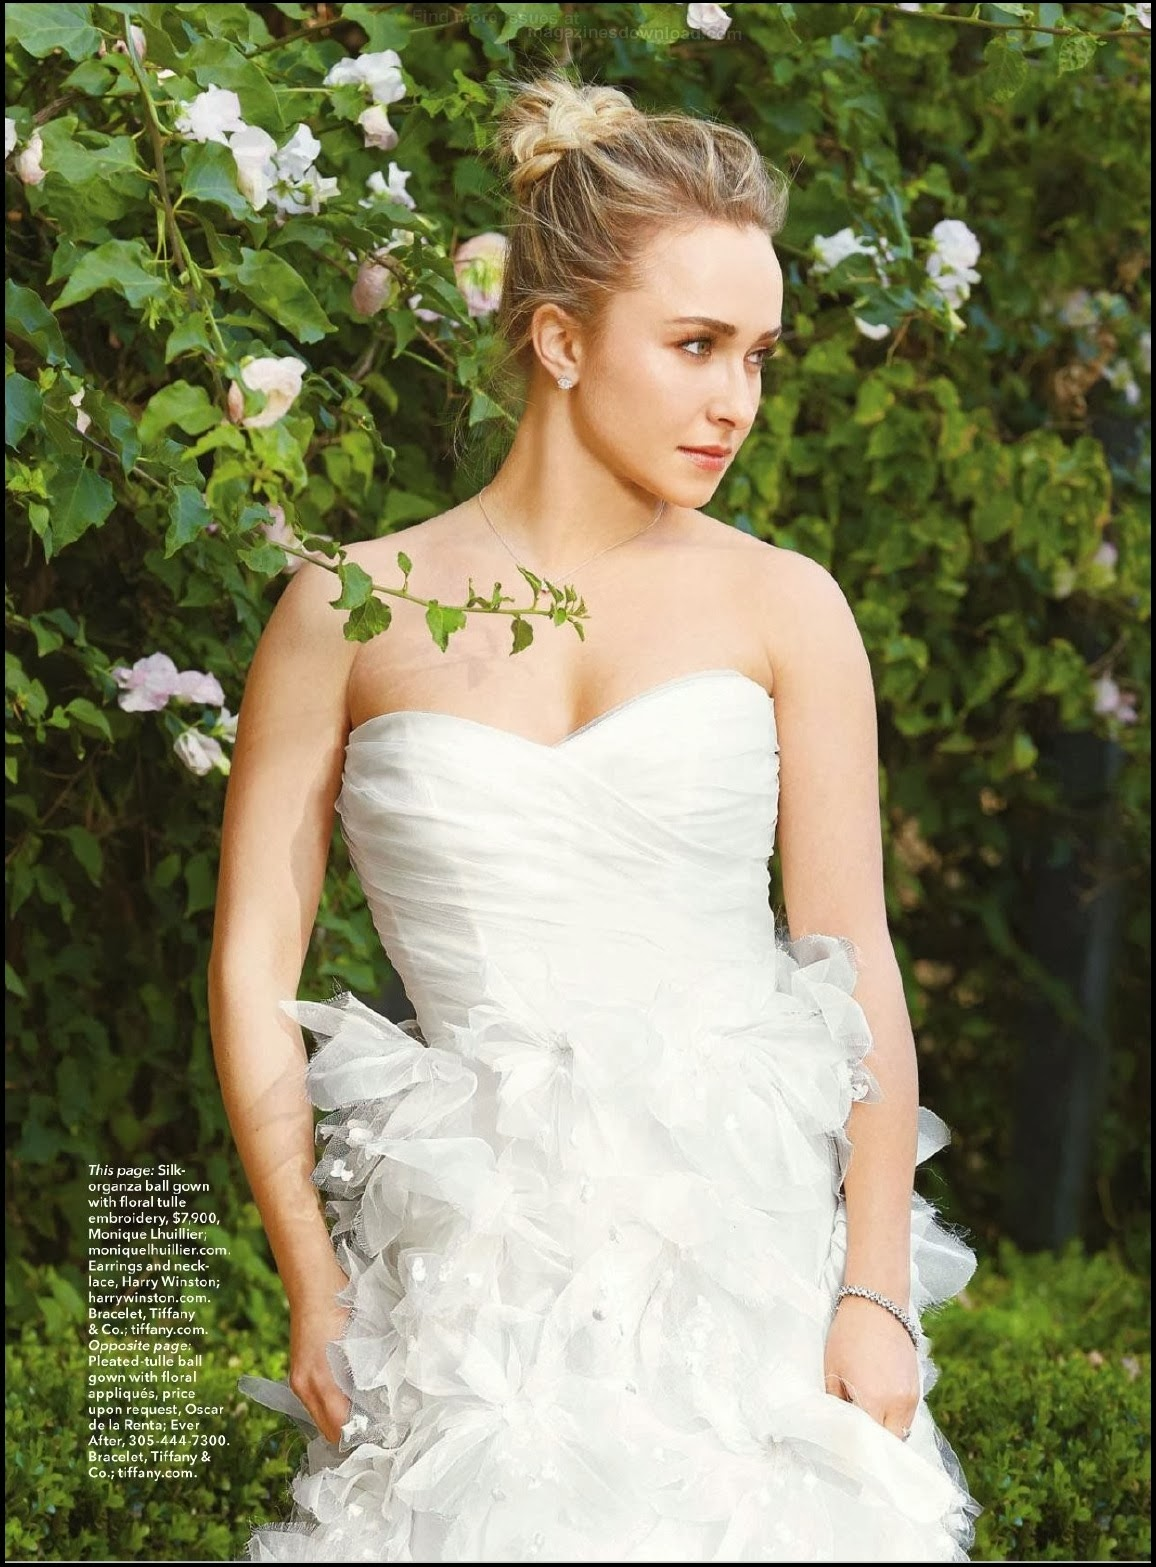 Hayden Panettiere HQ Pictures Brides Germany Magazine Photoshoot April/May 2014